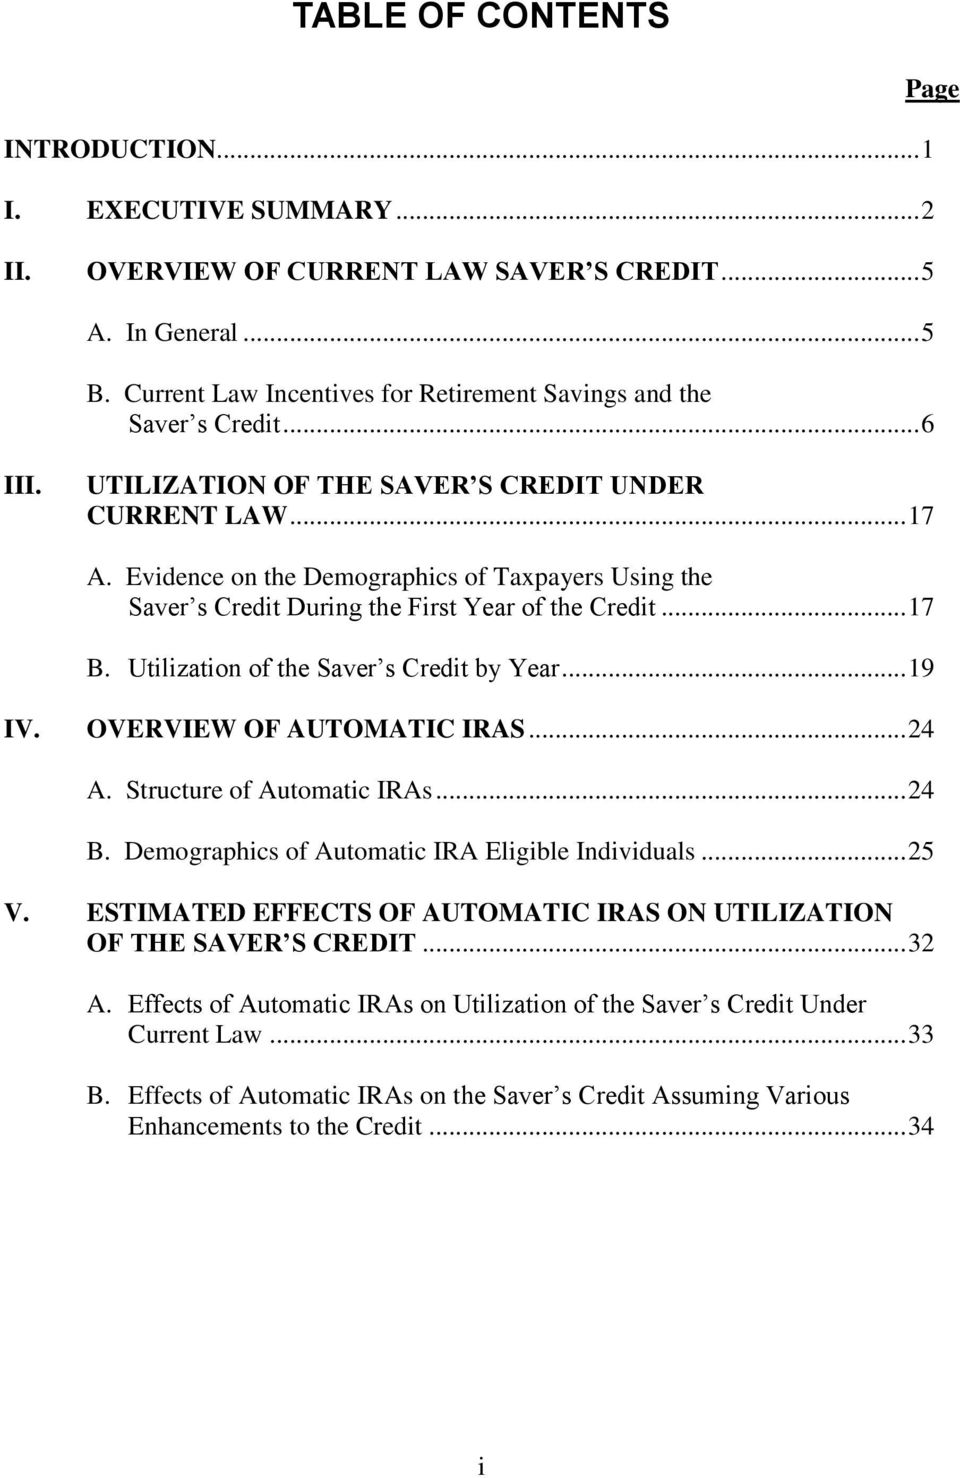 Evidence on the Demographics of Taxpayers Using the Saver s Credit During the First Year of the Credit... 17 B. Utilization of the Saver s Credit by Year... 19 IV. OVERVIEW OF AUTOMATIC IRAS... 24 A.